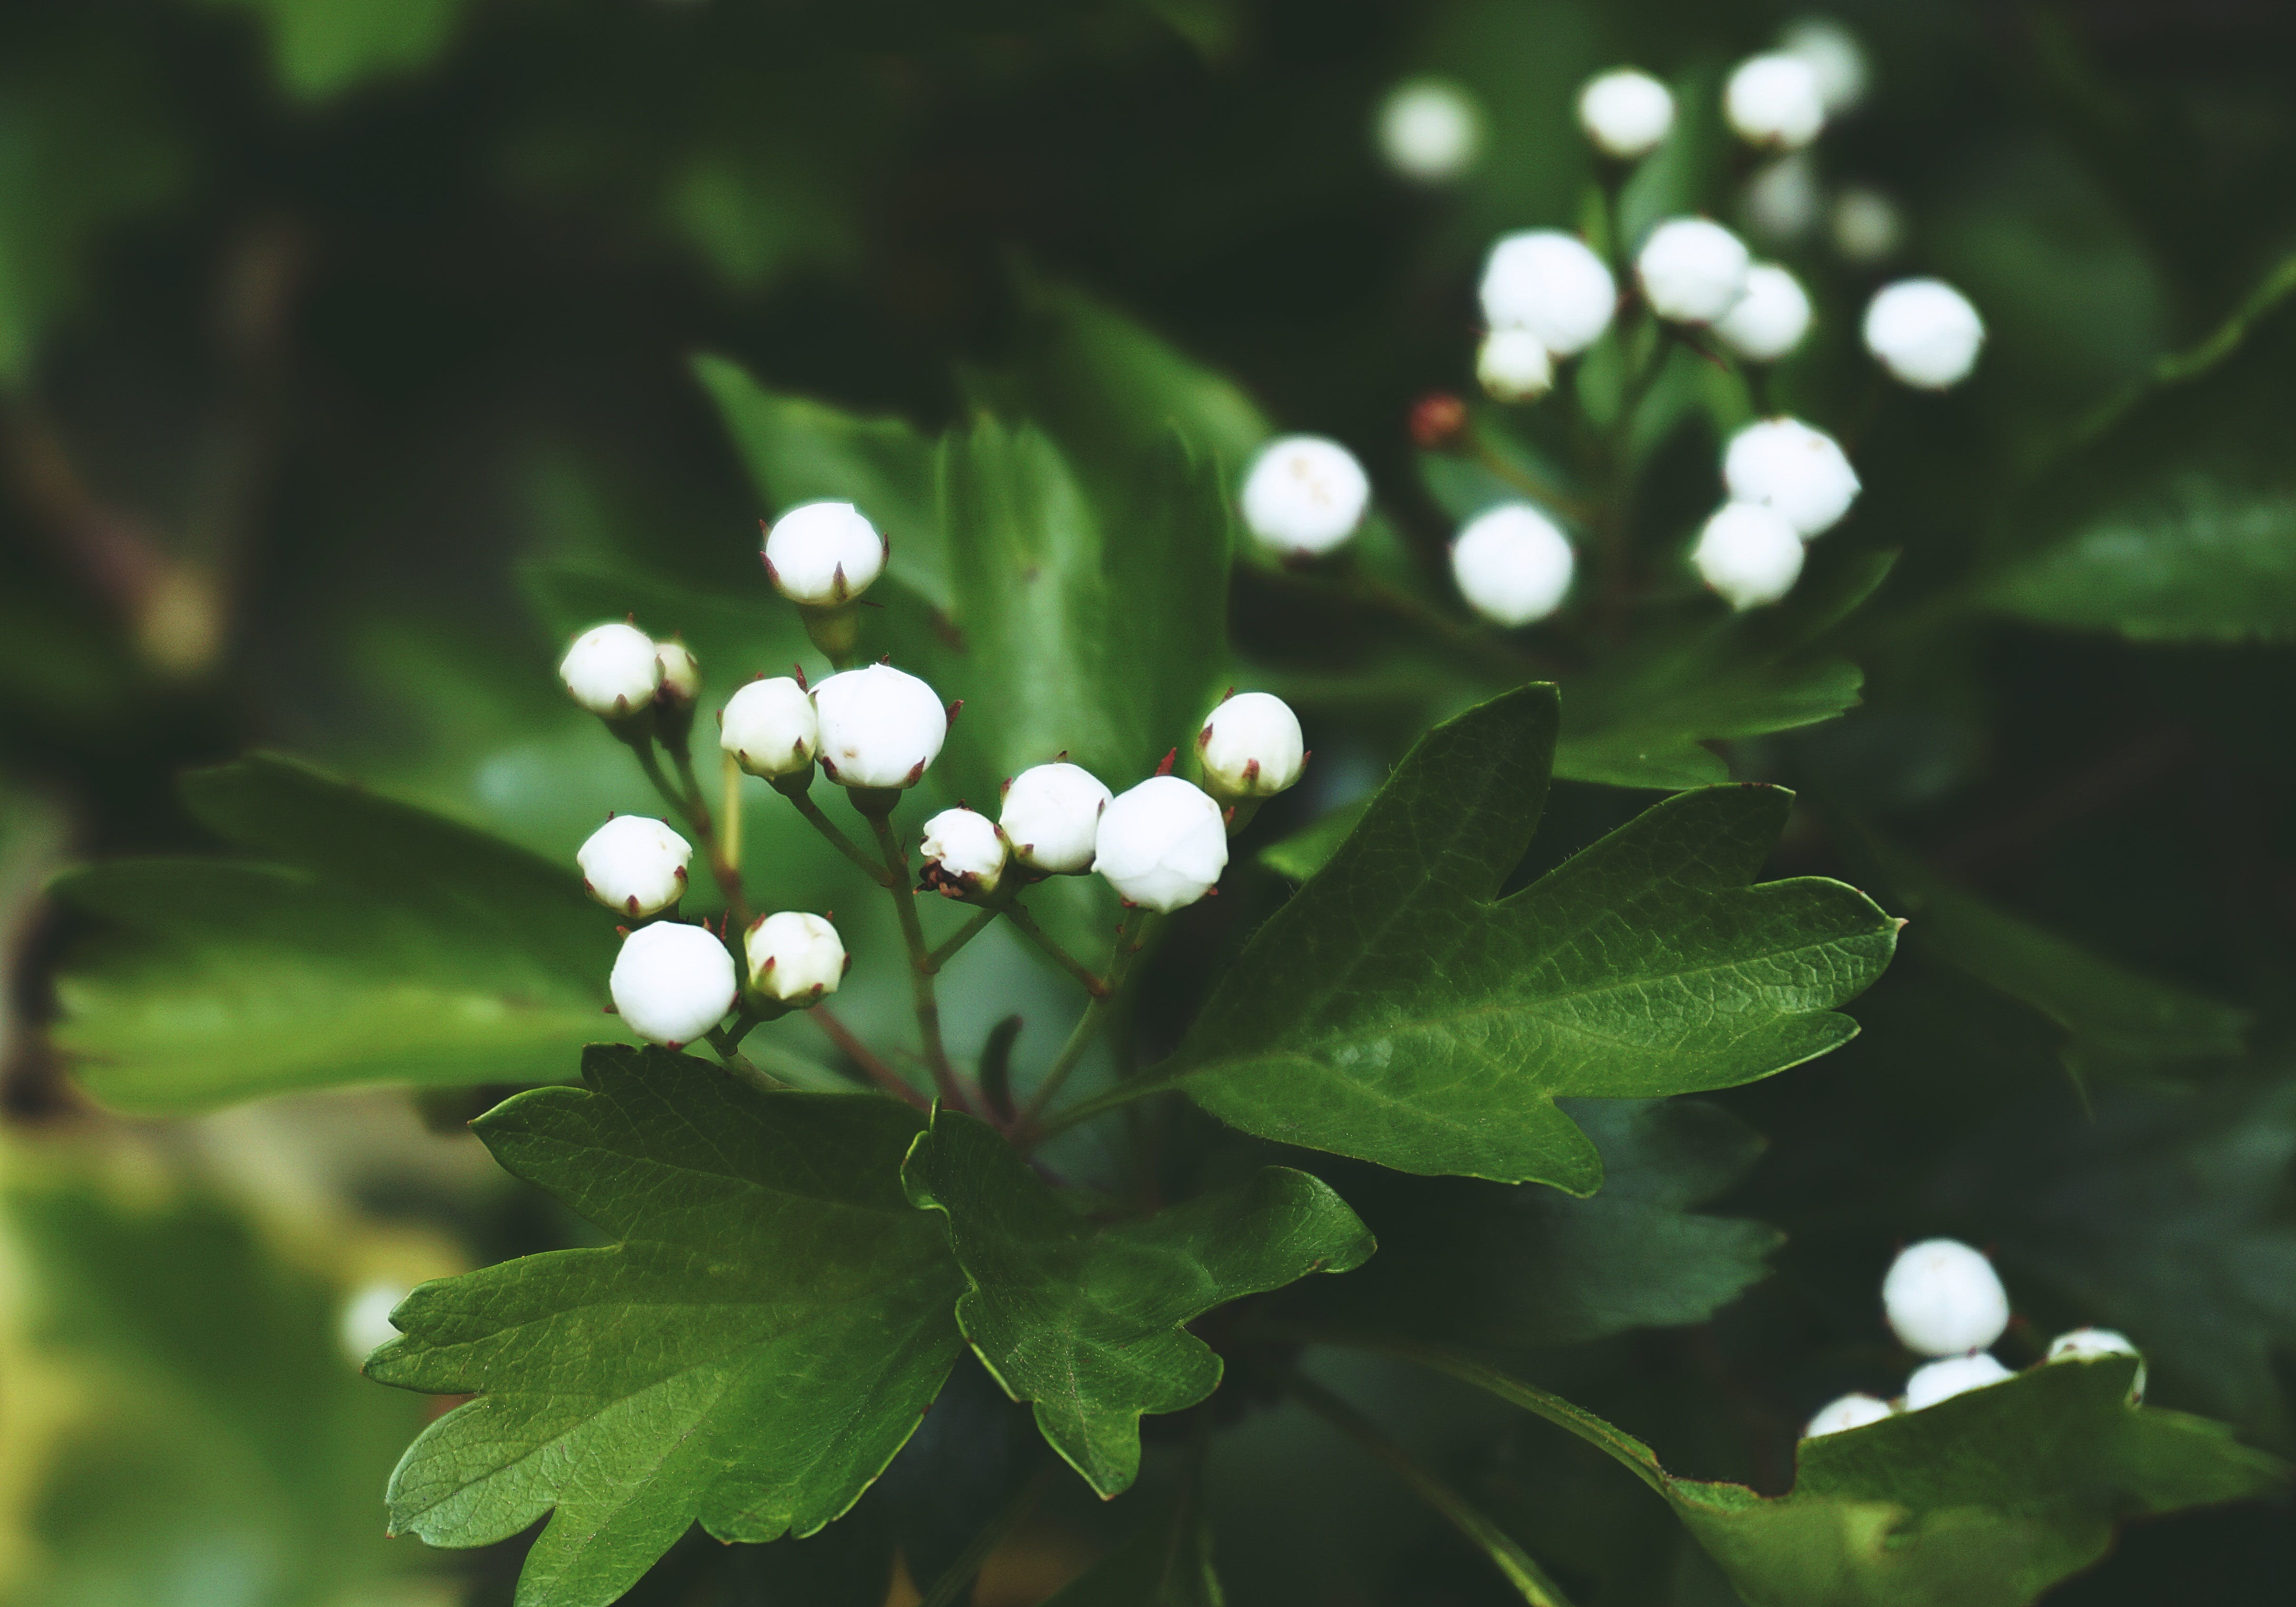 Close-up Photo of White Flower Buds